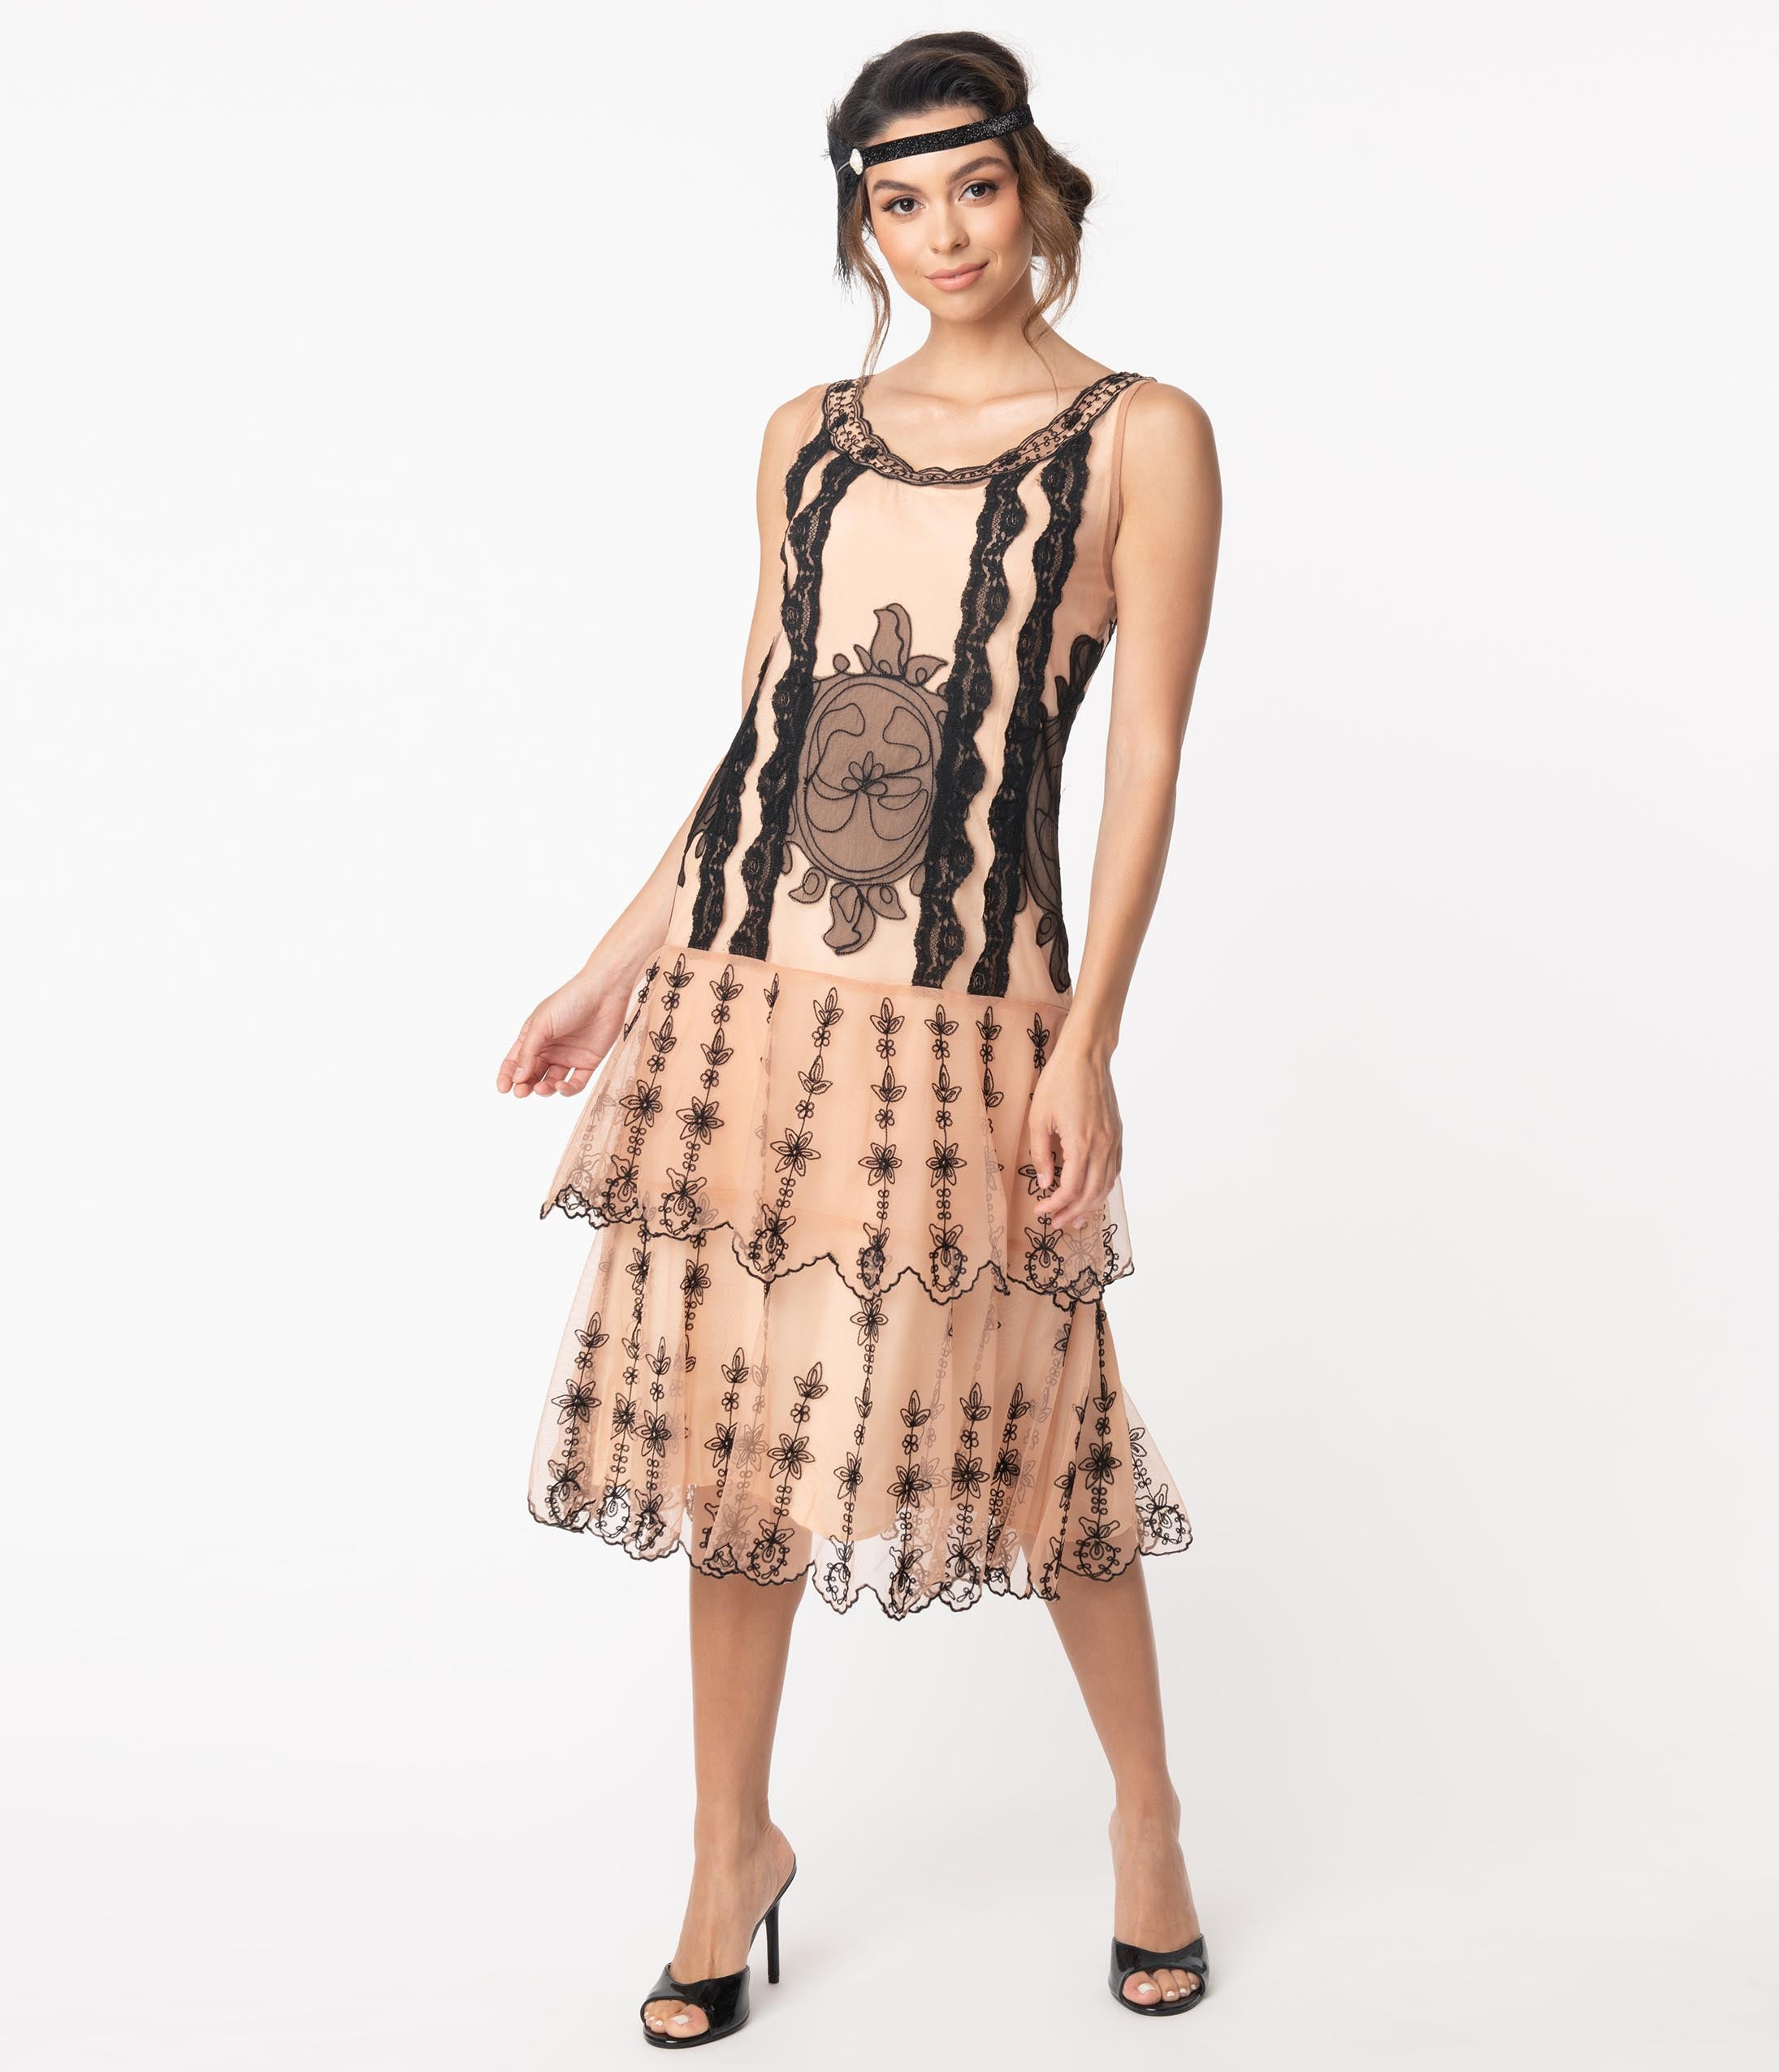 1920s Fashion & Clothing | Roaring 20s Attire 1920S Style Peach  Black Embroidery Eva Flapper Dress $268.00 AT vintagedancer.com